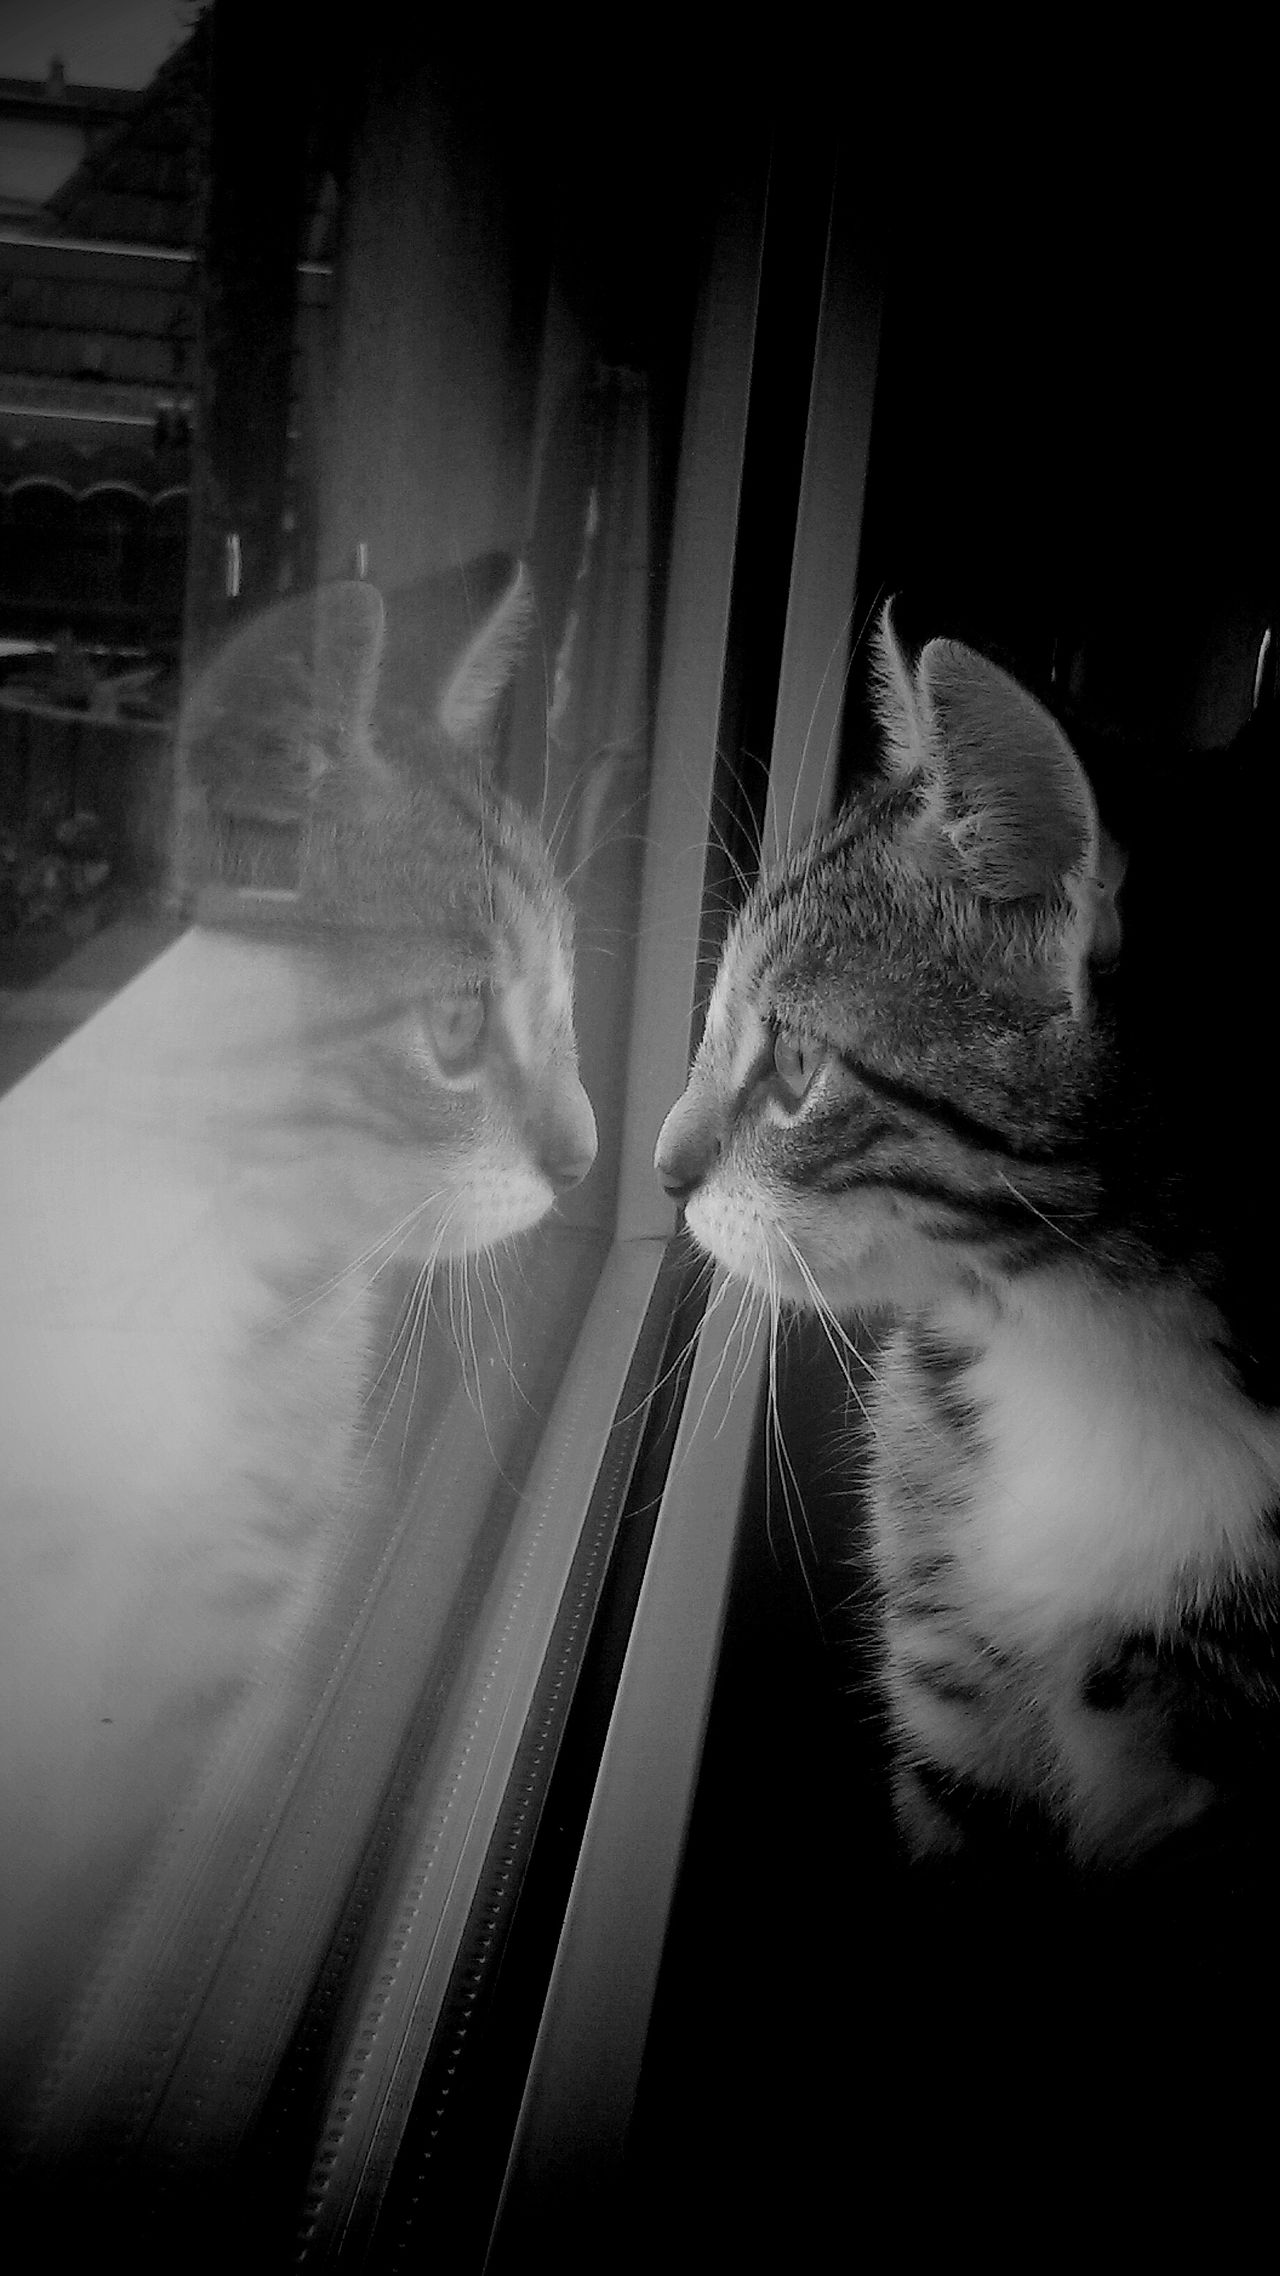 Cat Refelection - Monochrome_Photography Black And White TakeoverContrast Dramatic Angles EyeEm Gallery Showcase October Creativity Animal Cats Of EyeEm Cat My Photos Adis Art EyeEm Best Shots Berlin, Germany  Fine Art Atmospheric Reflection EyeEm Best Edits Animal Photography Animal Love Coincidedence Photography Shadow Window Reflections Capture Berlin Finding New Frontiers Adapted To The City Lieblingsteil Miles Away Uniqueness The City Light Welcome To Black EyeEmNewHere EyeEm Diversity Resist Long Goodbye The Secret Spaces Art Is Everywhere Break The Mold TCPM The Architect - 2017 EyeEm Awards The Photojournalist - 2017 EyeEm Awards The Portraitist - 2017 EyeEm Awards Neighborhood Map Visual Feast BYOPaper! Live For The Story Place Of Heart Let's Go. Together.